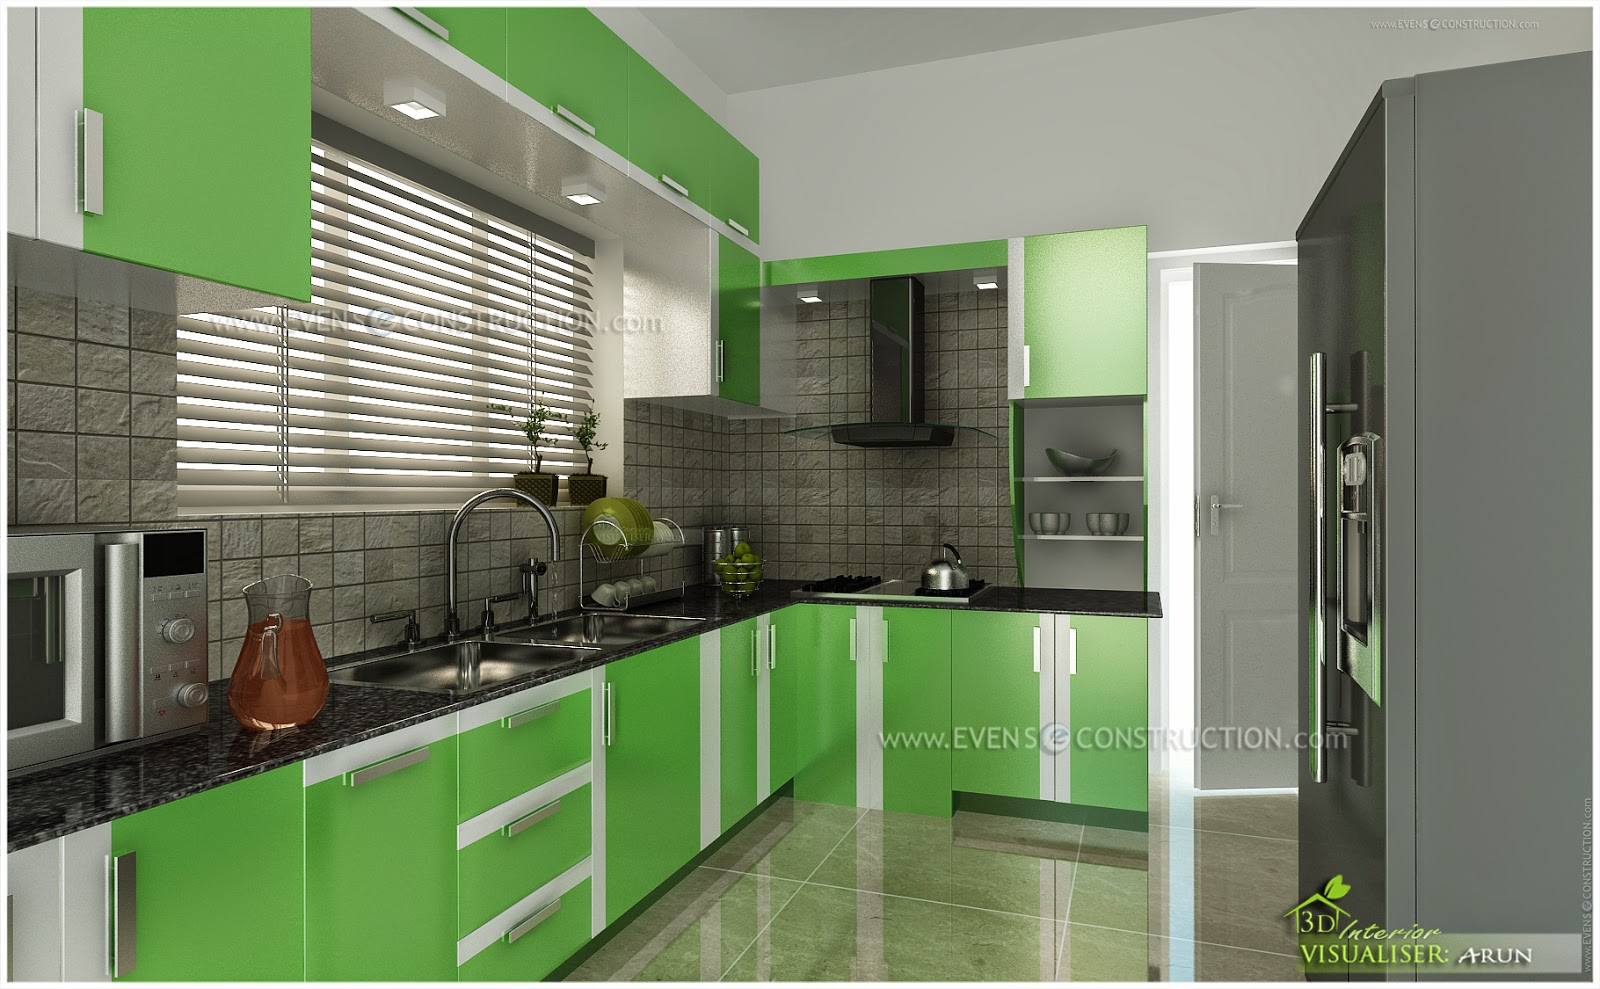 Green Panels Given For Kitchen Cabinets